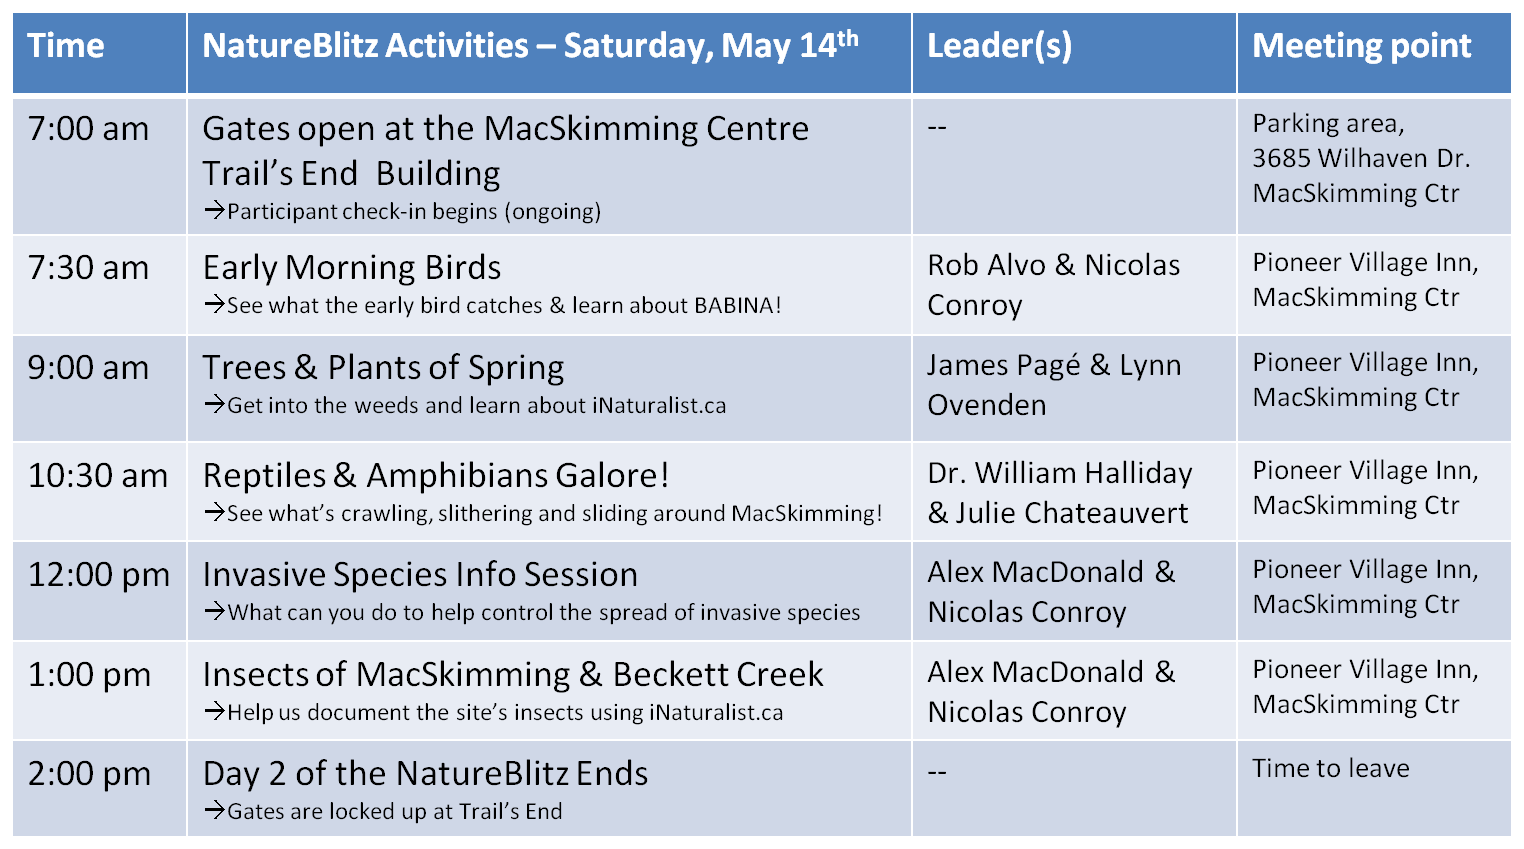 Schedule of Day 2 activities for the MacSkimming NatureBlitz